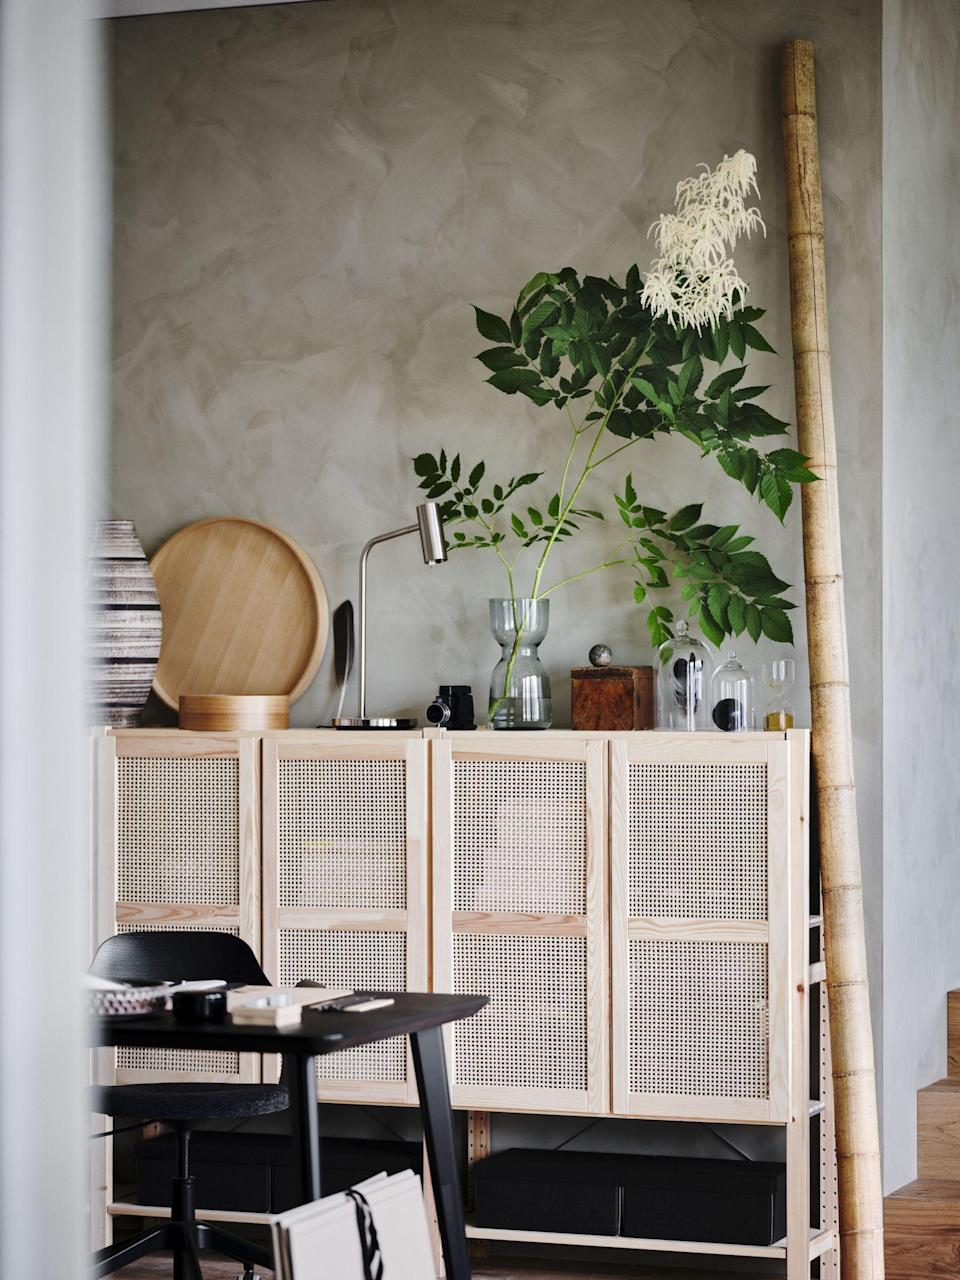 """<p><strong><a href=""""https://www.housebeautiful.com/uk/lifestyle/eco/a35138270/ikea-advert-sustainability-frugal/"""" rel=""""nofollow noopener"""" target=""""_blank"""" data-ylk=""""slk:IKEA"""" class=""""link rapid-noclick-resp"""">IKEA</a> has launched three new collections for spring/summer 2021 — <strong>Home Sanctuary</strong>, <strong>Outdoor Escapism</strong> and <strong>Everyday Celebrations</strong> — as part of its wider 'Transitions' theme. </strong></p><p>The Swedish retailer has explained it will be moving away from 'seasonal' <a href=""""https://www.housebeautiful.com/uk/decorate/walls/a35162682/interior-colour-trends-2021/"""" rel=""""nofollow noopener"""" target=""""_blank"""" data-ylk=""""slk:trends"""" class=""""link rapid-noclick-resp"""">trends</a>, as it hopes shoppers will embrace sustainable choices through 'transitions'. Unlike previous homeware drops, they are looking at the small ways we can adapt and change our homes by investing in quality products that stand the test of time. </p><p>It's all part of IKEA's goal of becoming a fully circular and climate positive business by 2030, as its successful linear model of making, selling and buying will not support the company to survive in the future.</p><p>'Sustainability is at the heart of everything we do at IKEA,' the retailer explains. 'From how we design our products, through to initiatives like <a href=""""https://www.housebeautiful.com/uk/lifestyle/shopping/a34356605/ikea-buy-back-old-furniture-resell-second-hand/"""" rel=""""nofollow noopener"""" target=""""_blank"""" data-ylk=""""slk:Buy Back"""" class=""""link rapid-noclick-resp"""">Buy Back</a>, our ambition is to create more affordable and easily accessible solutions to help people live more sustainably.' </p><p>Take a look at what's on offer this spring...</p>"""